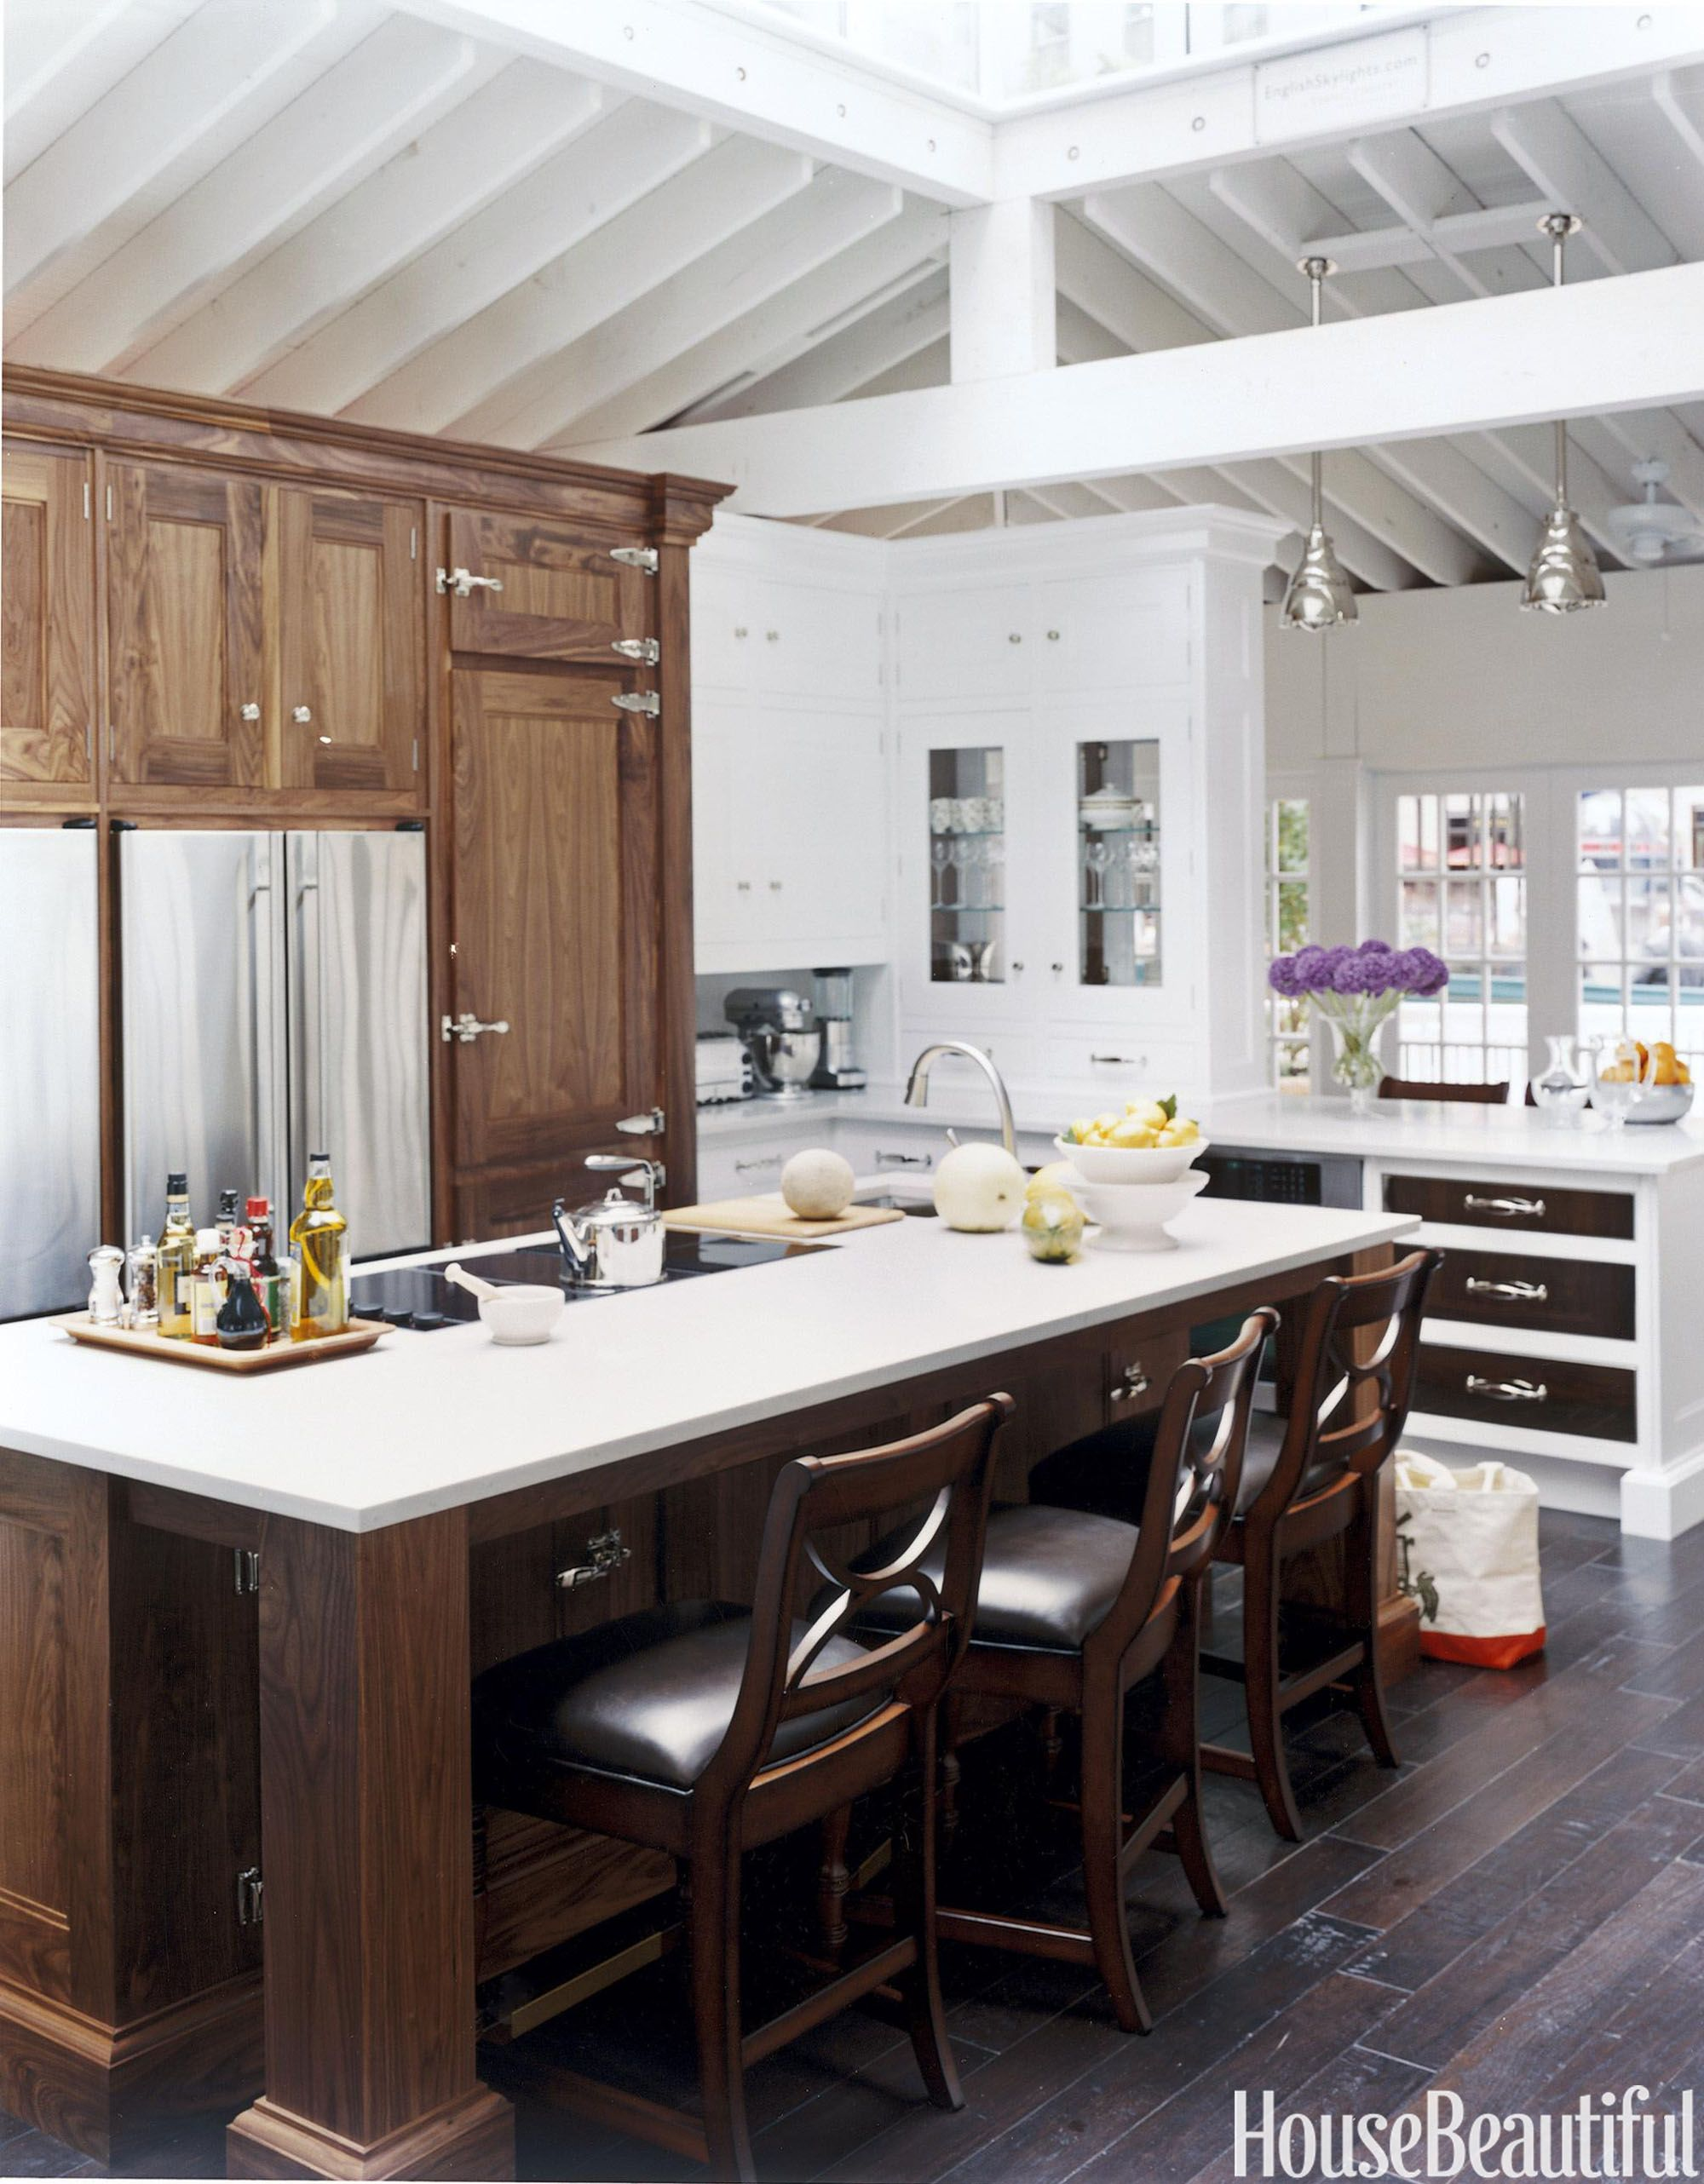 House Beautiful Kitchens Kitchens Of The Year  Designer Tips From House Beautiful's